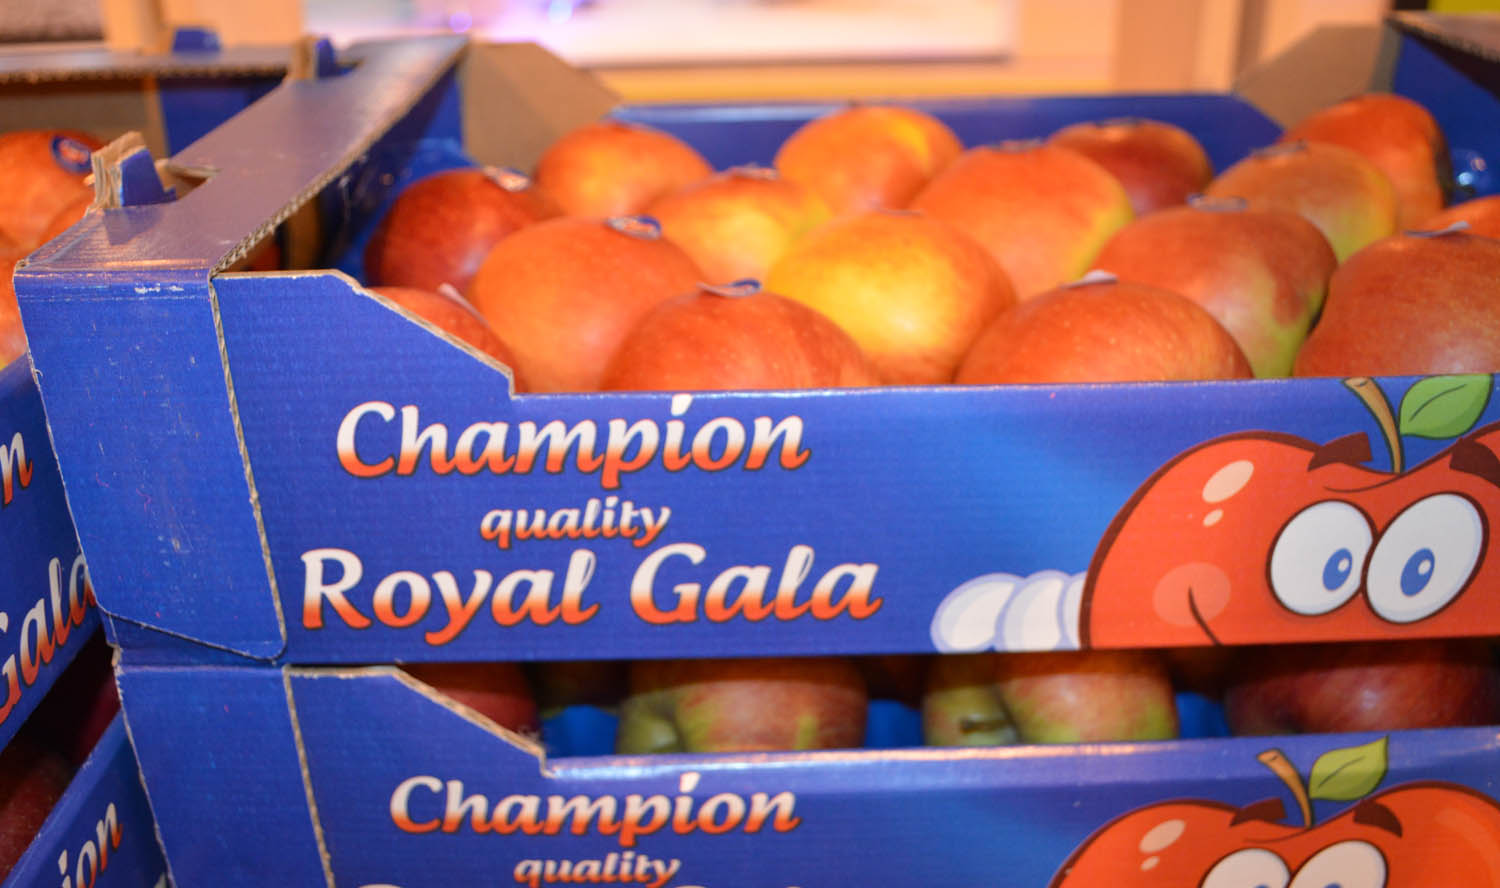 3 Champion quality Royal Gala 4 kg